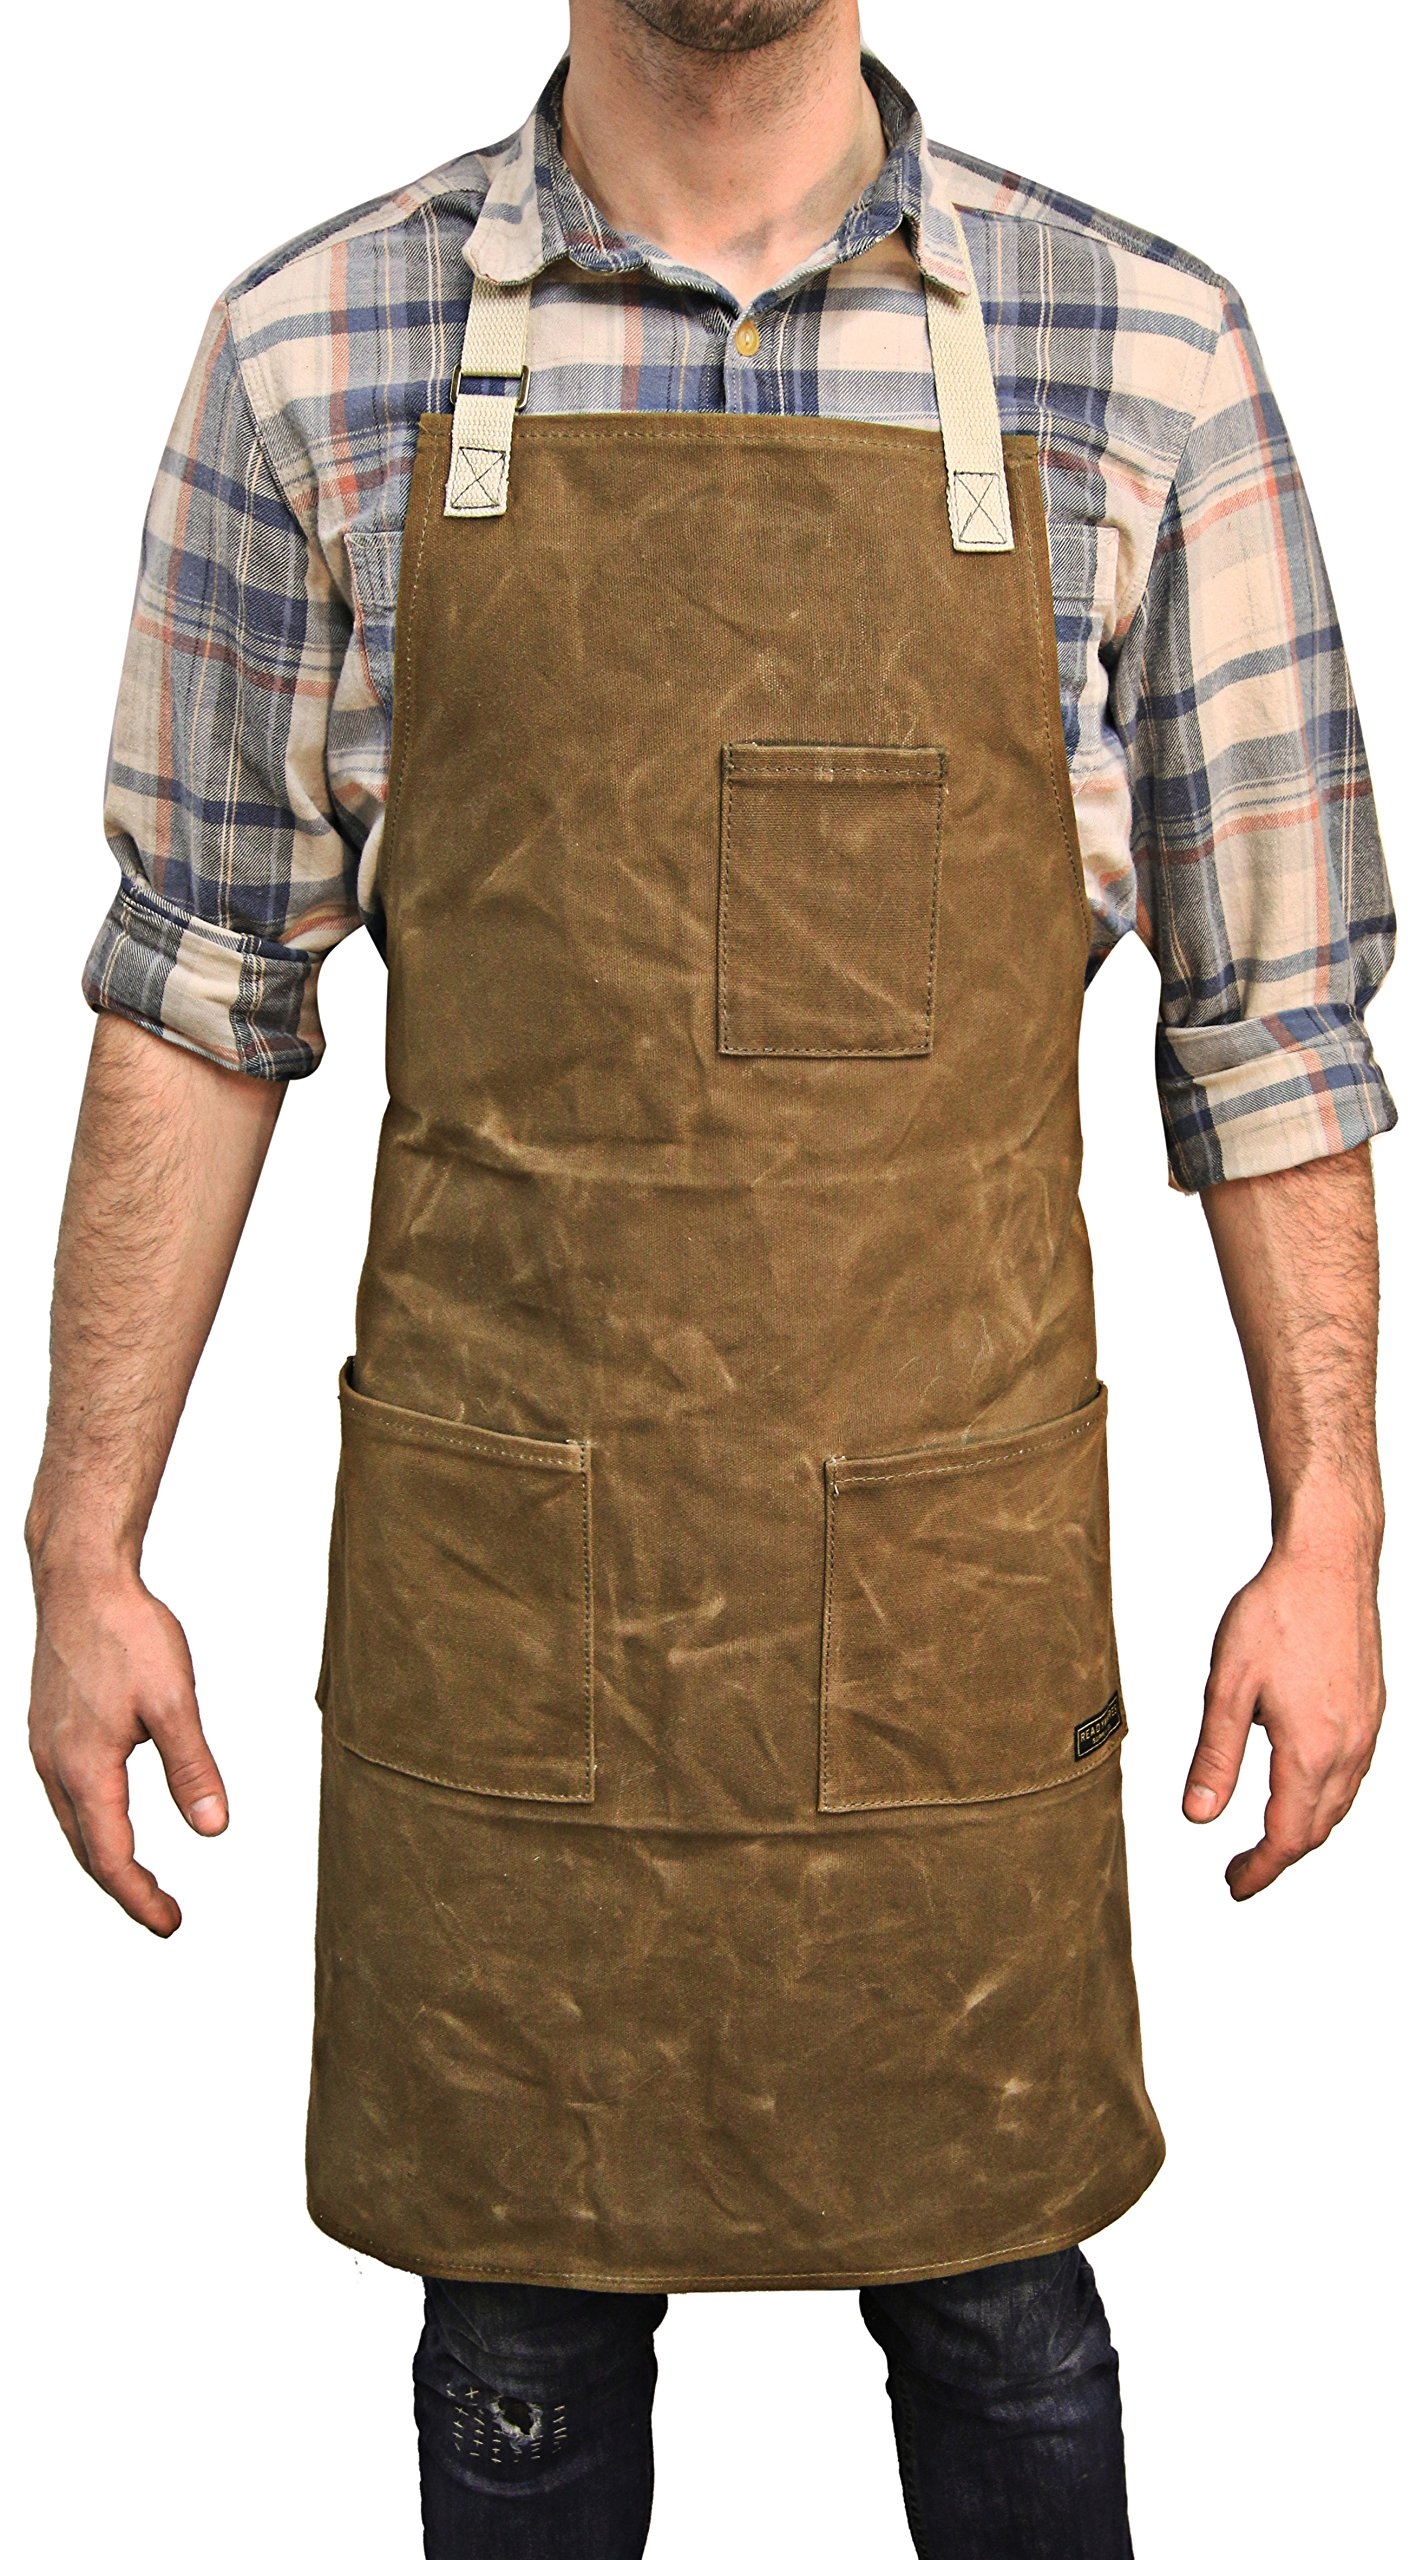 Readywares Waxed Canvas Utility Apron (Tan)